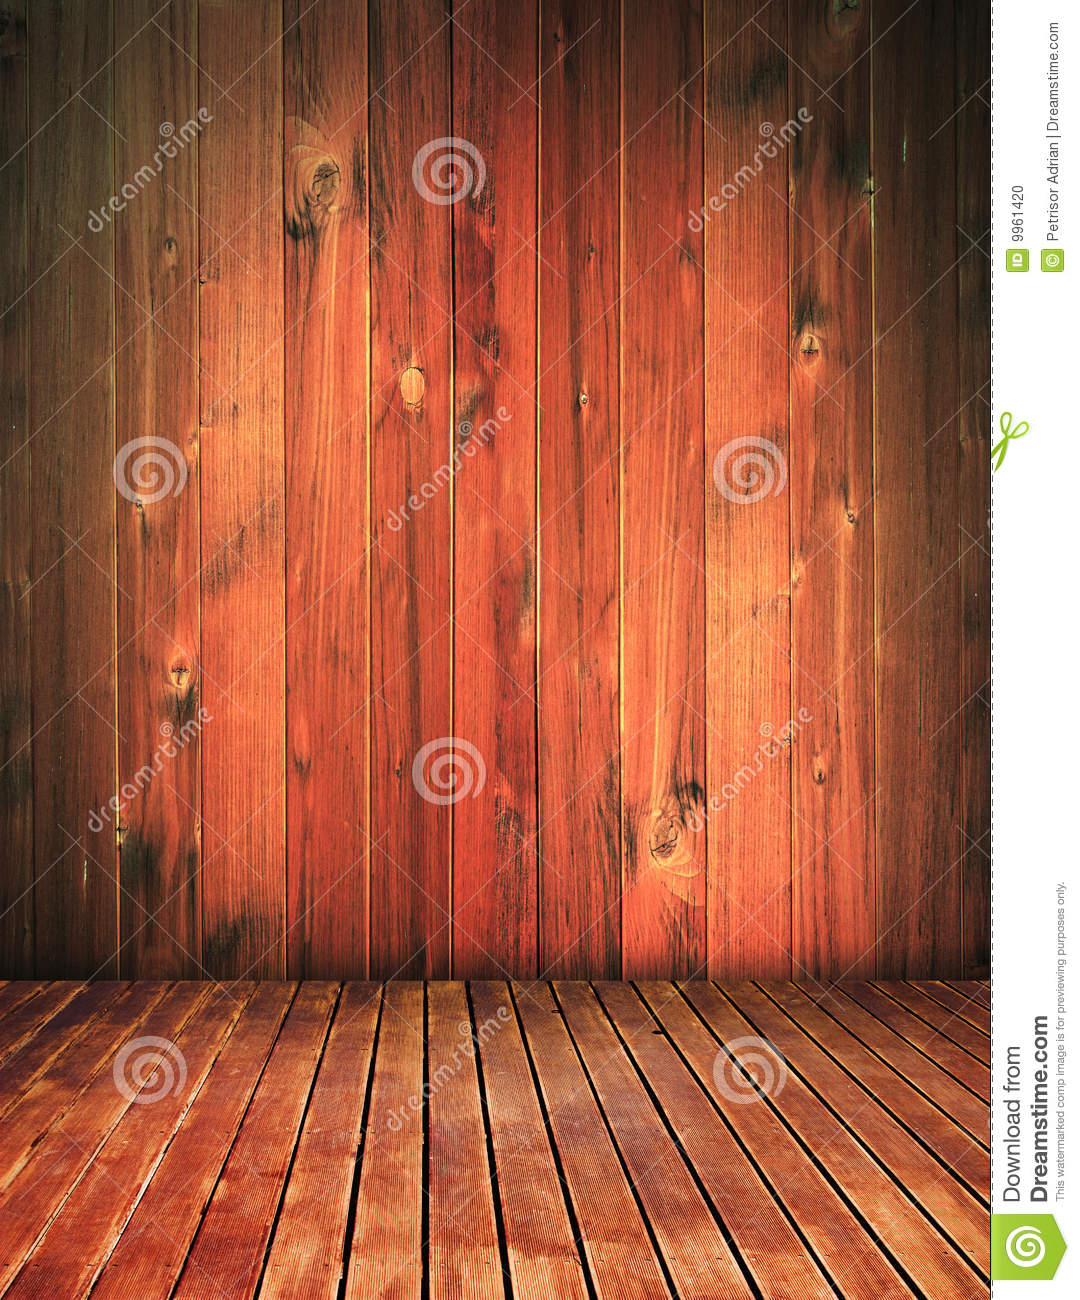 Vintage Wood House Interior Grunge Background Stock Photo